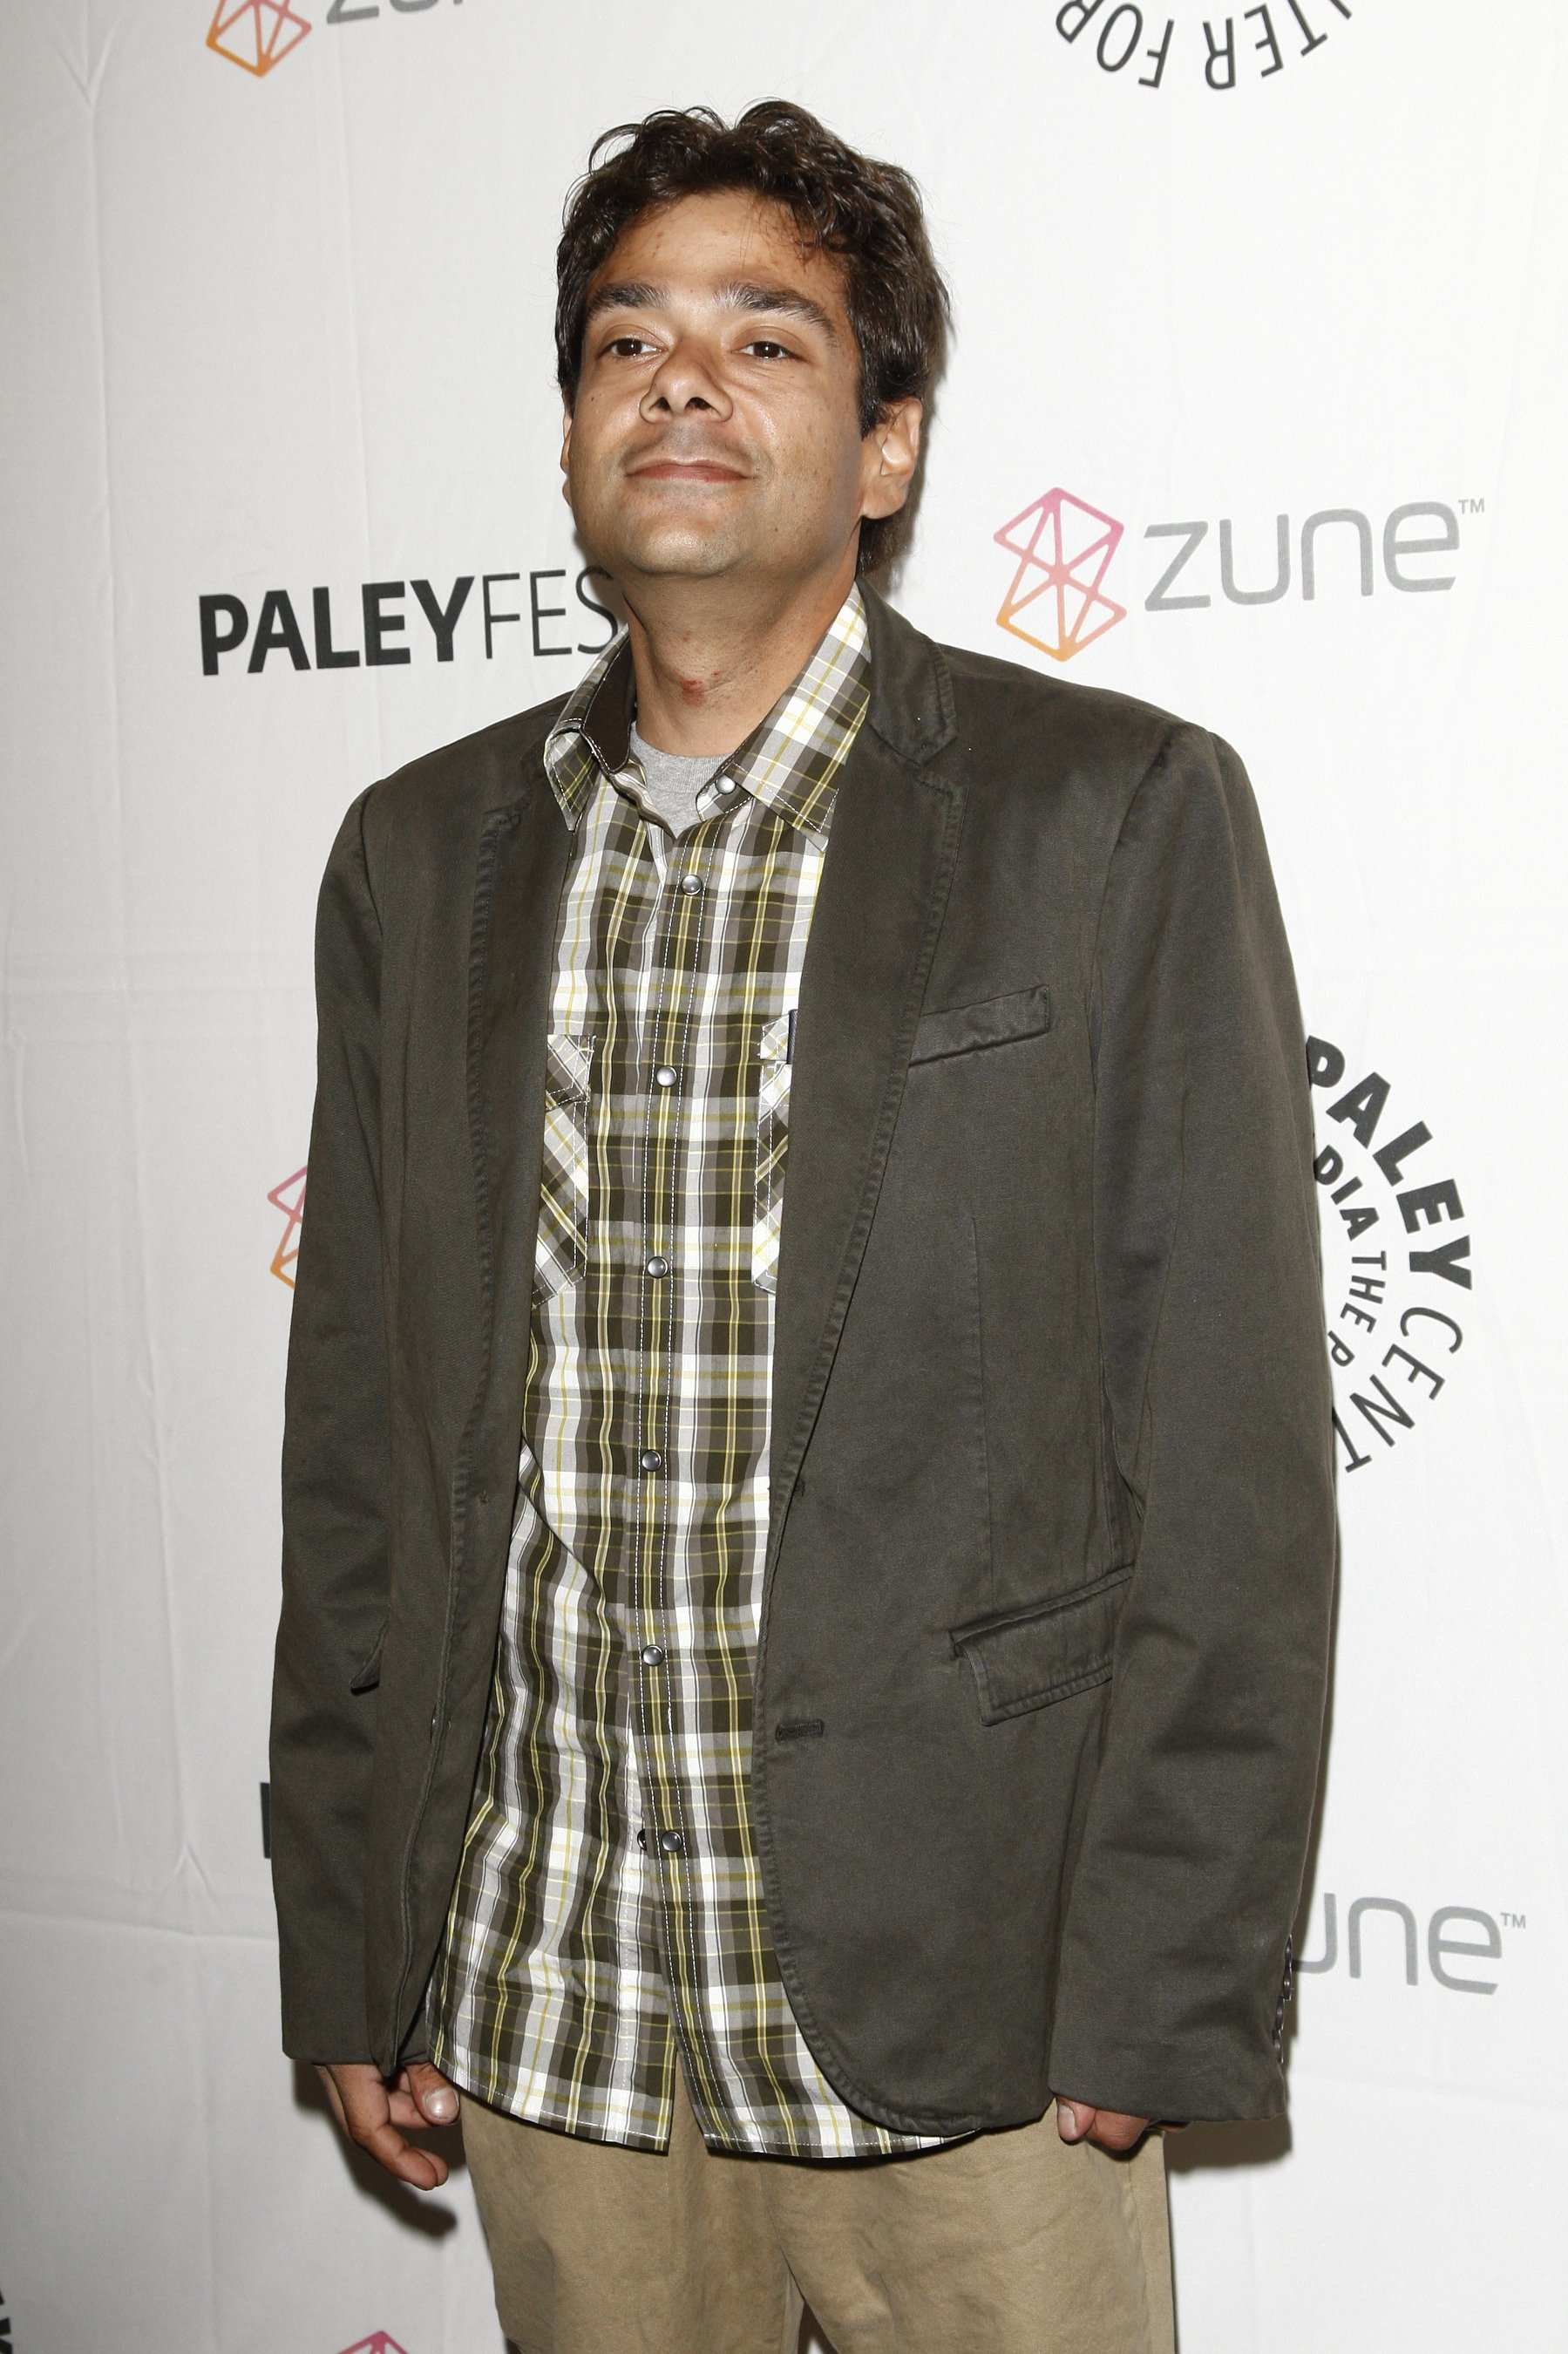 Shaun Weiss arriving at the Paleyfest 2011 on March 12, 2011 in Beverly Hills, California. | Source: Getty Images